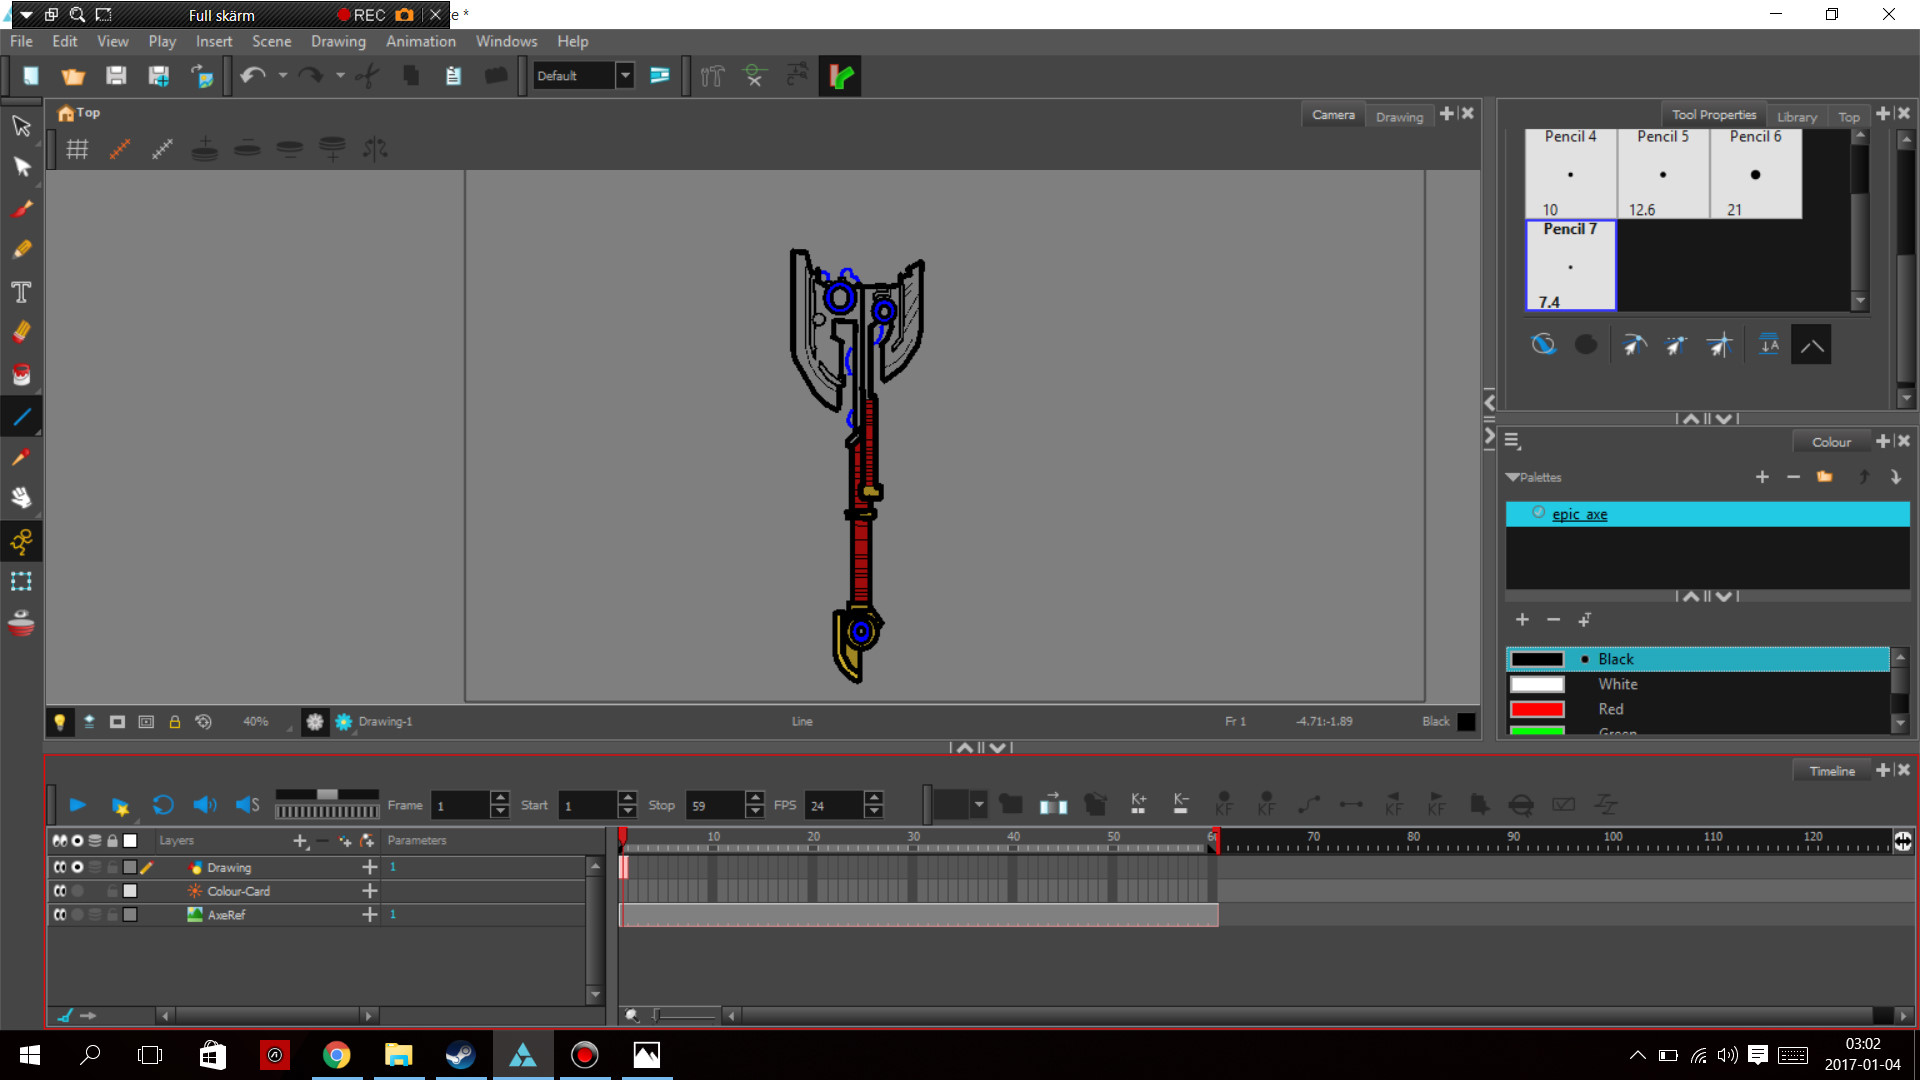 unfinished axe